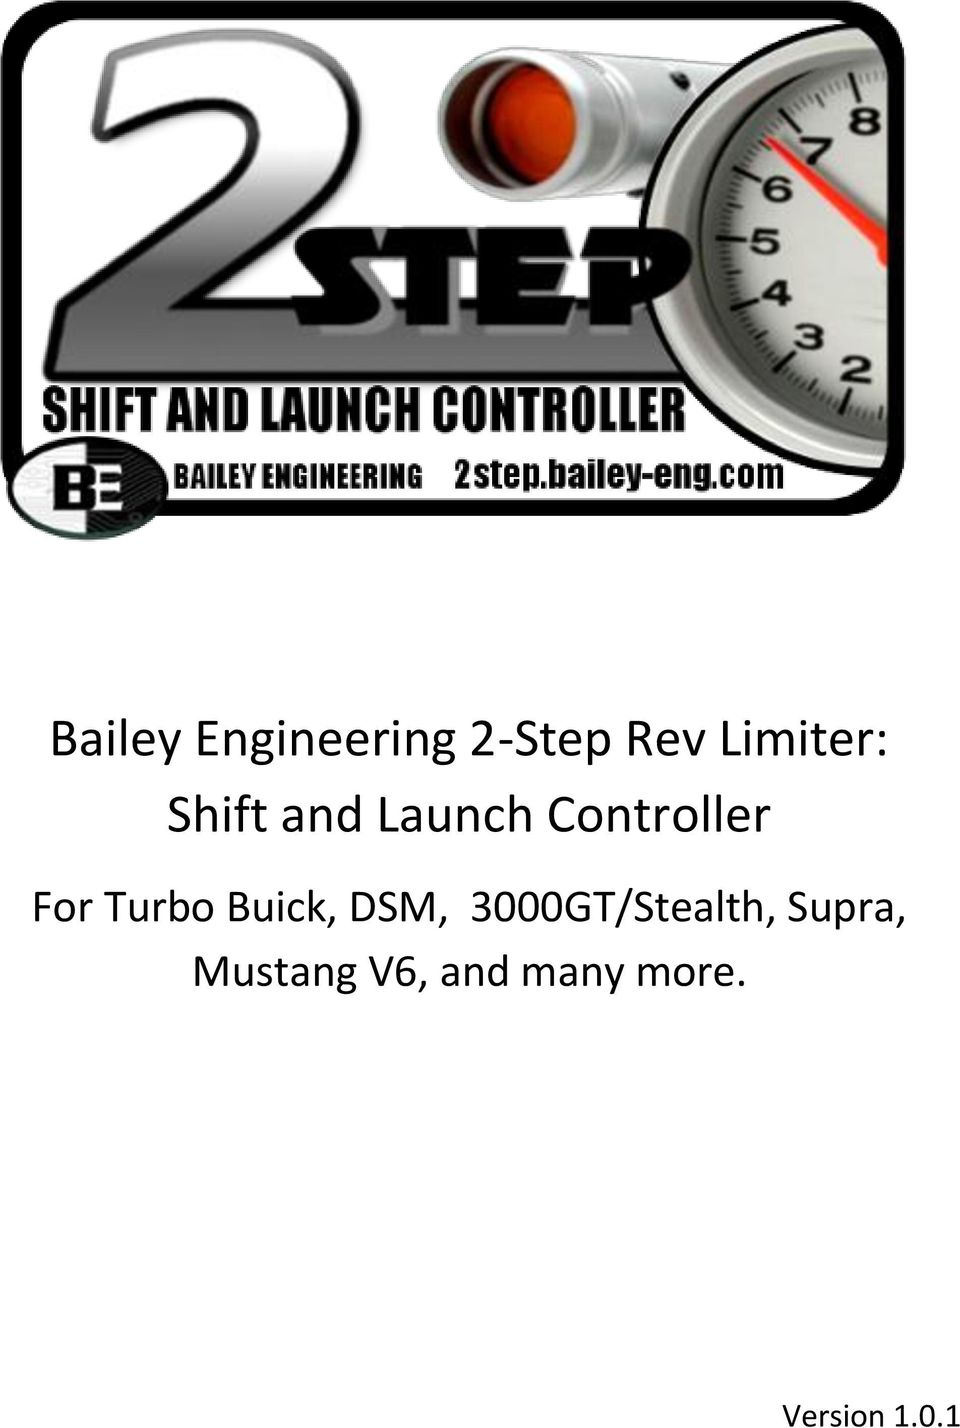 Bailey Engineering 2 Step Rev Limiter Shift And Launch Controller Pdf Wiring Diagram Vw Golf Gti For Turbo Buick Dsm 3000gt Stealth